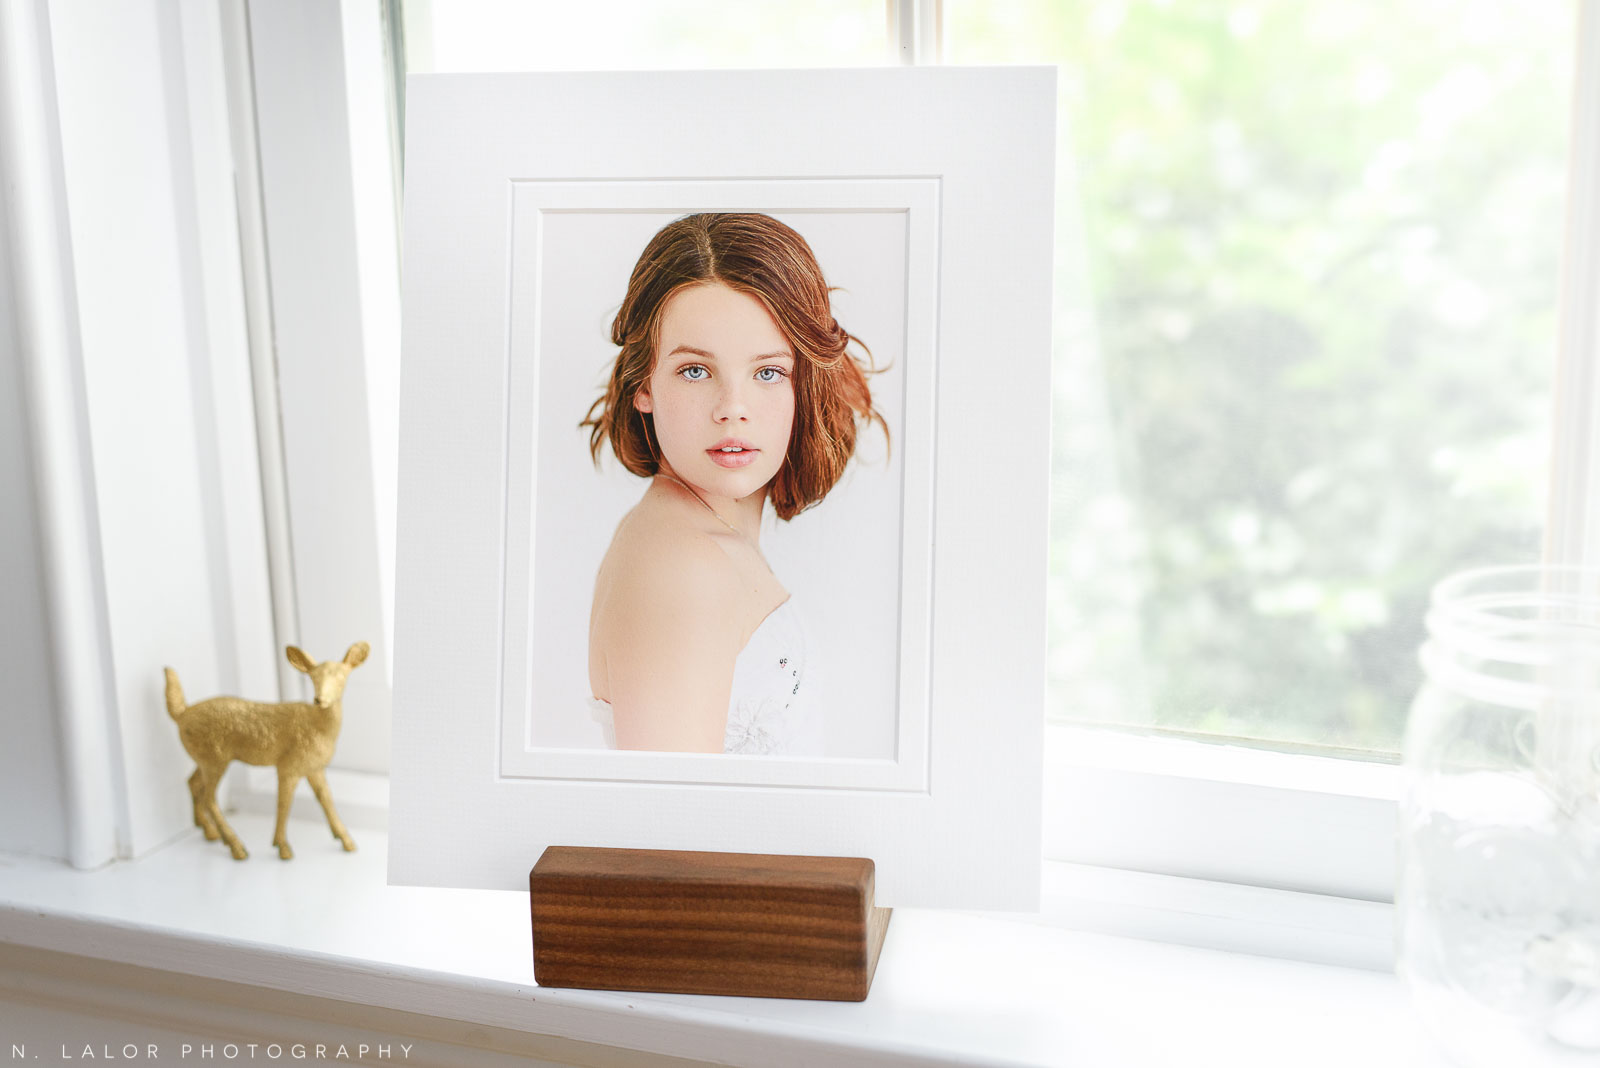 Matted print on a window sill. N. Lalor Photography's luxury fine art photography products, based in Greenwich, Connecticut.